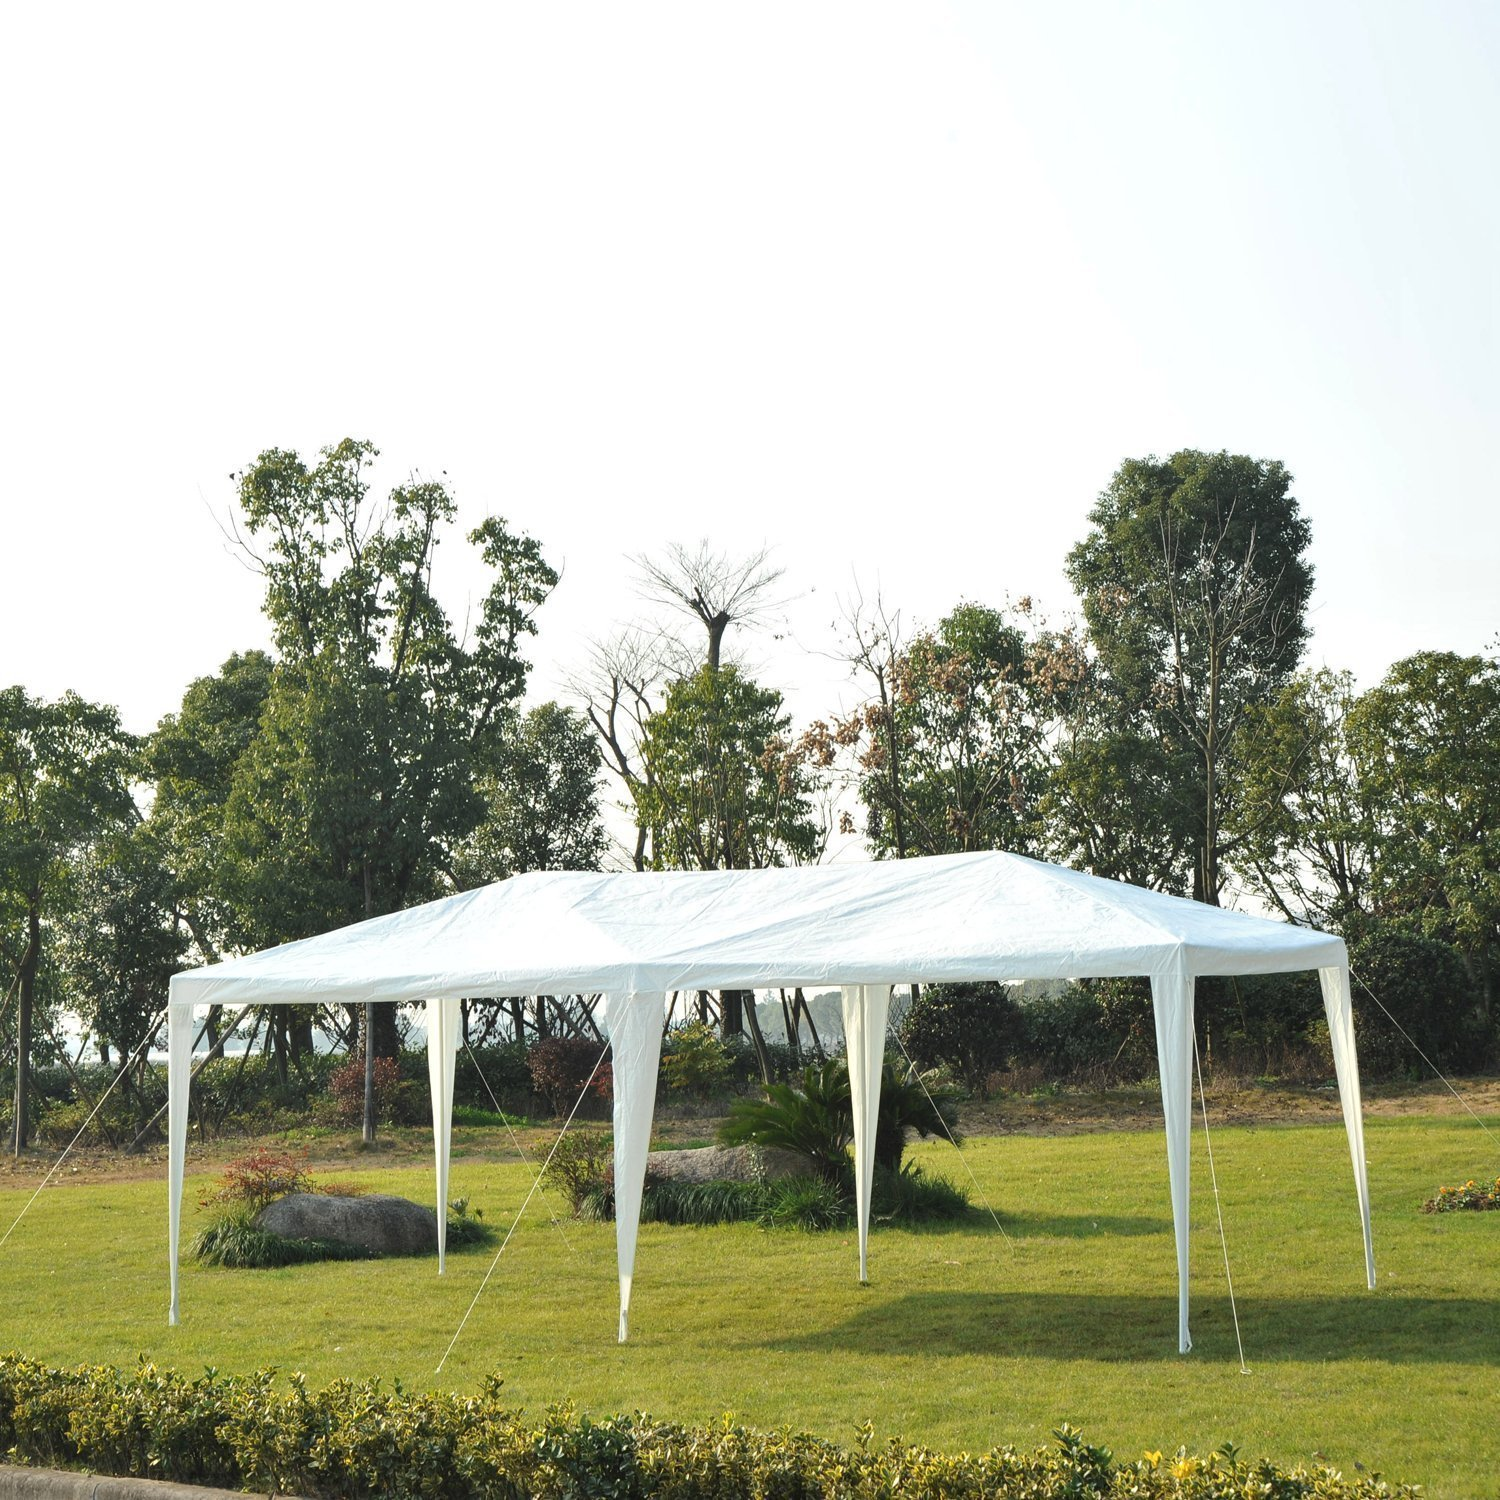 10-039-x-20-039-Gazebo-Canopy-Cover-Tent-Patio-Party-w-Removable-Mesh-Side-Walls thumbnail 14